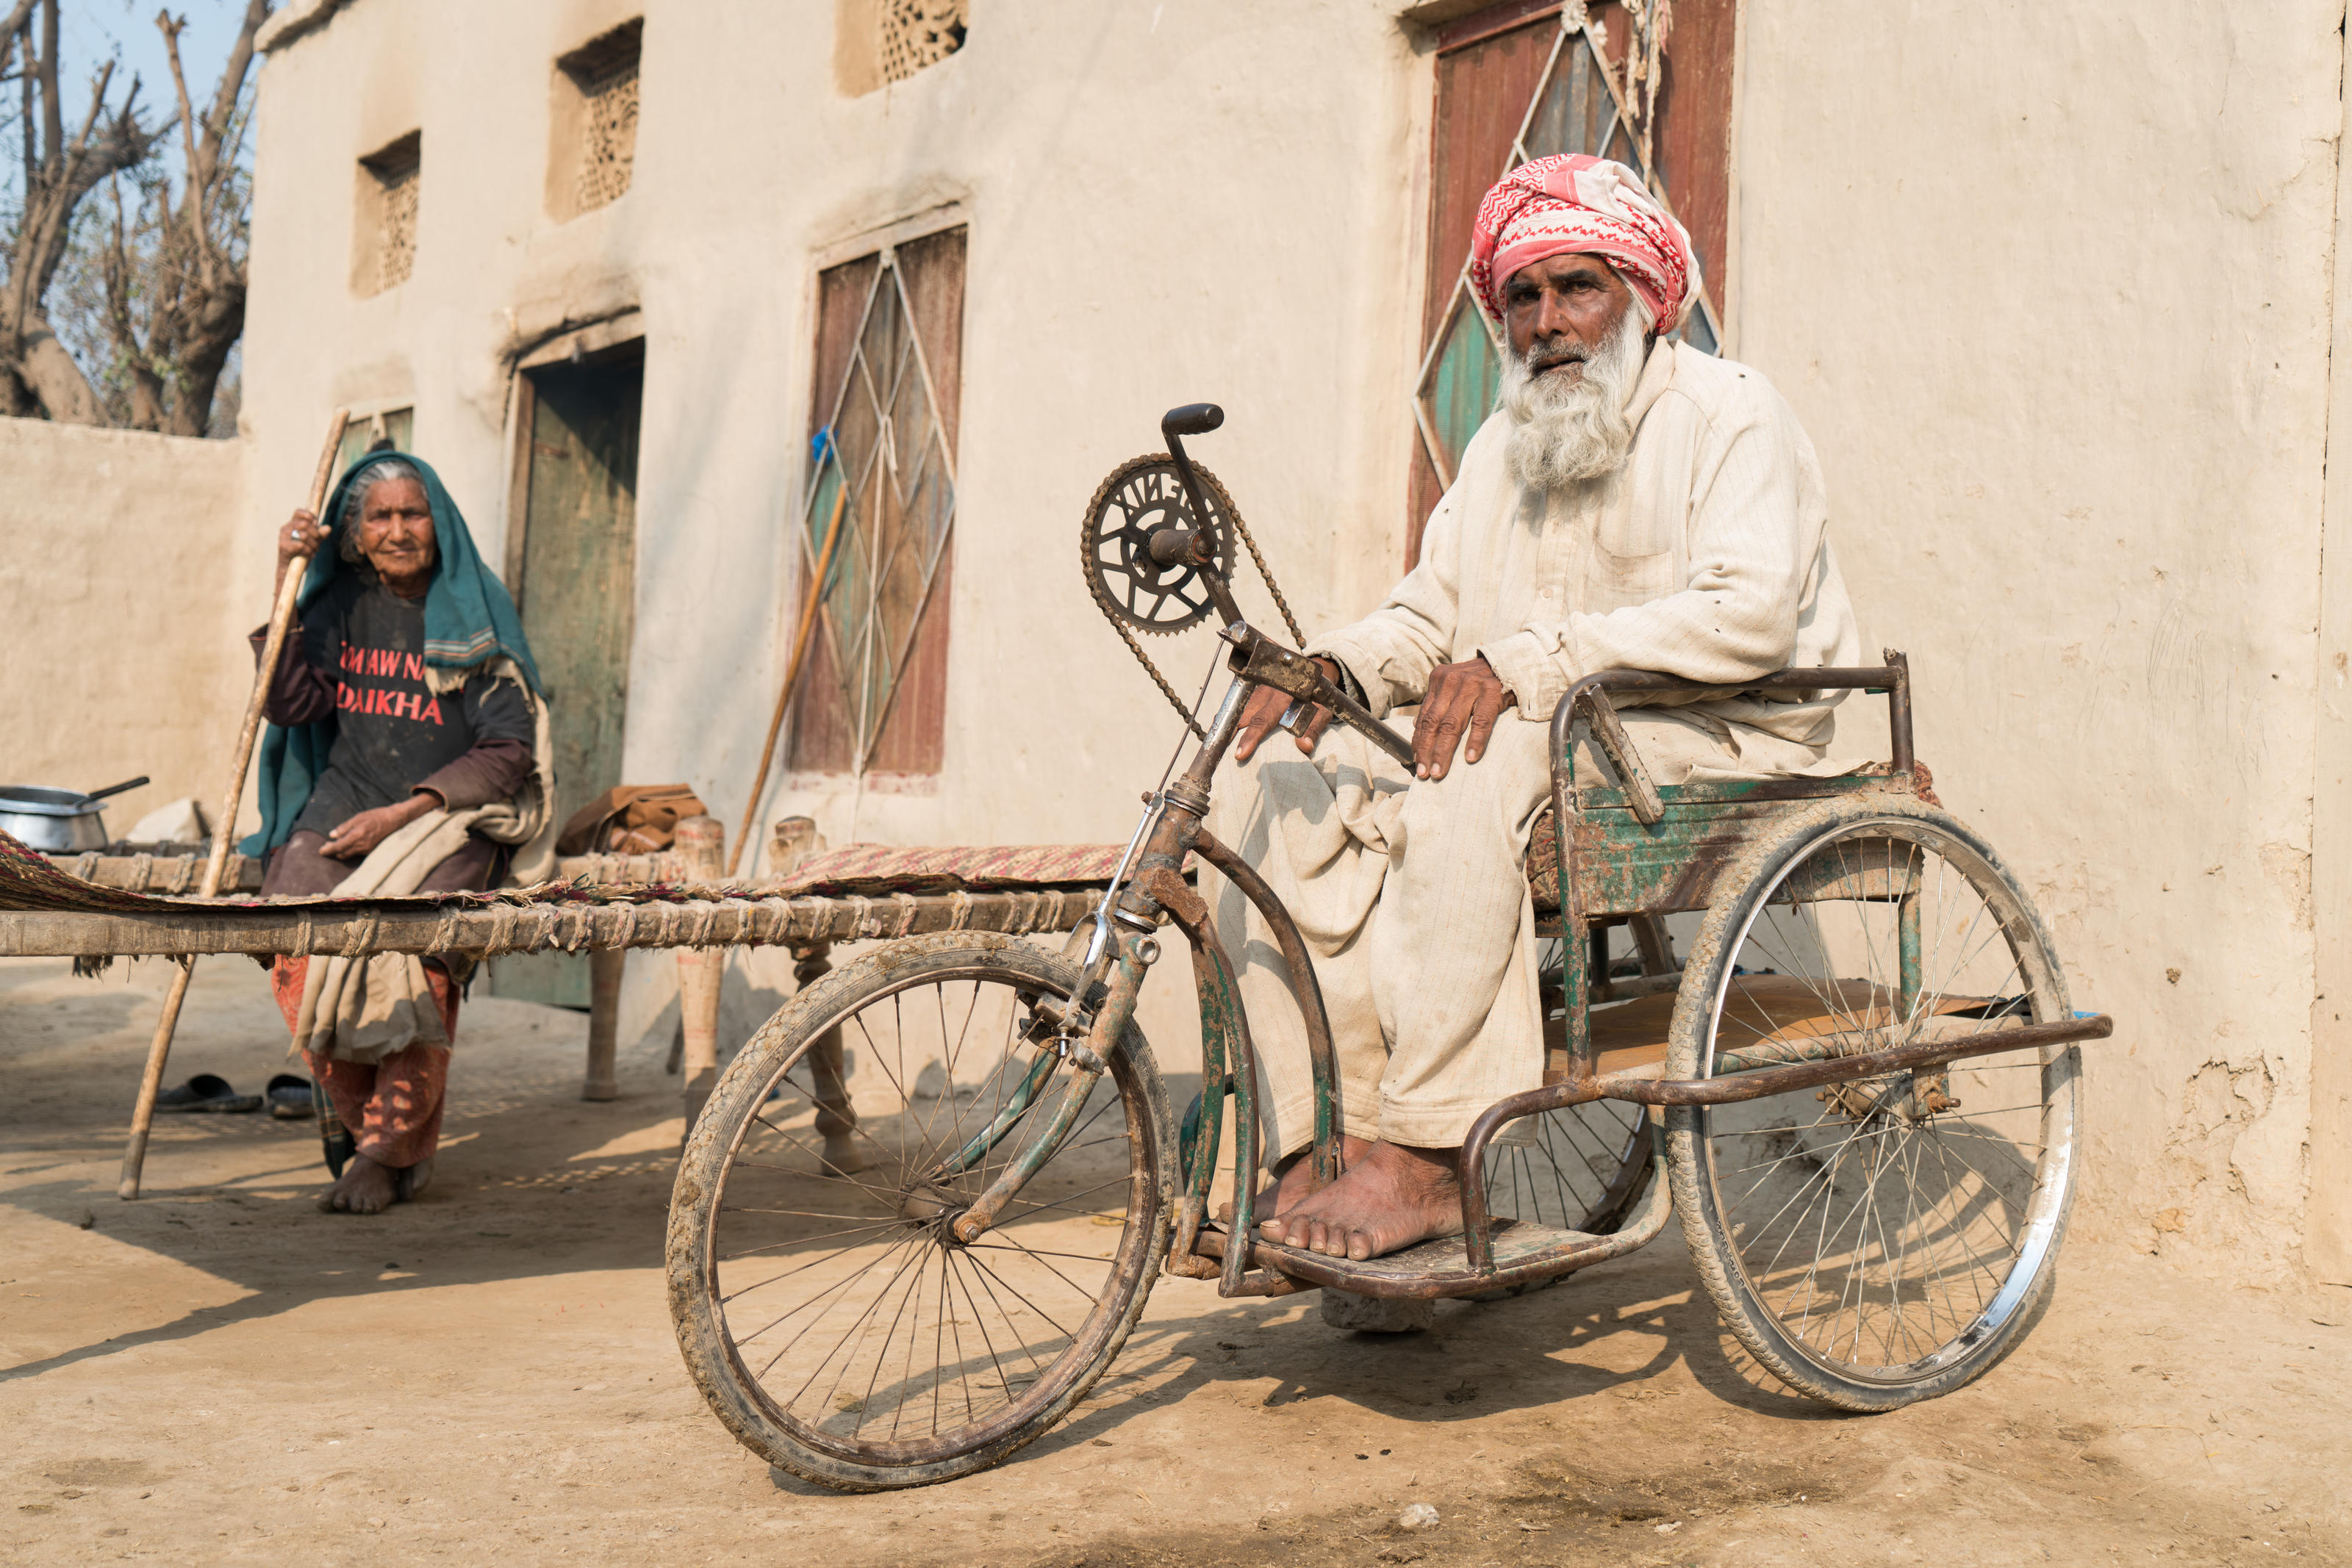 Ghulam outside his house, Punjab, Pakistan